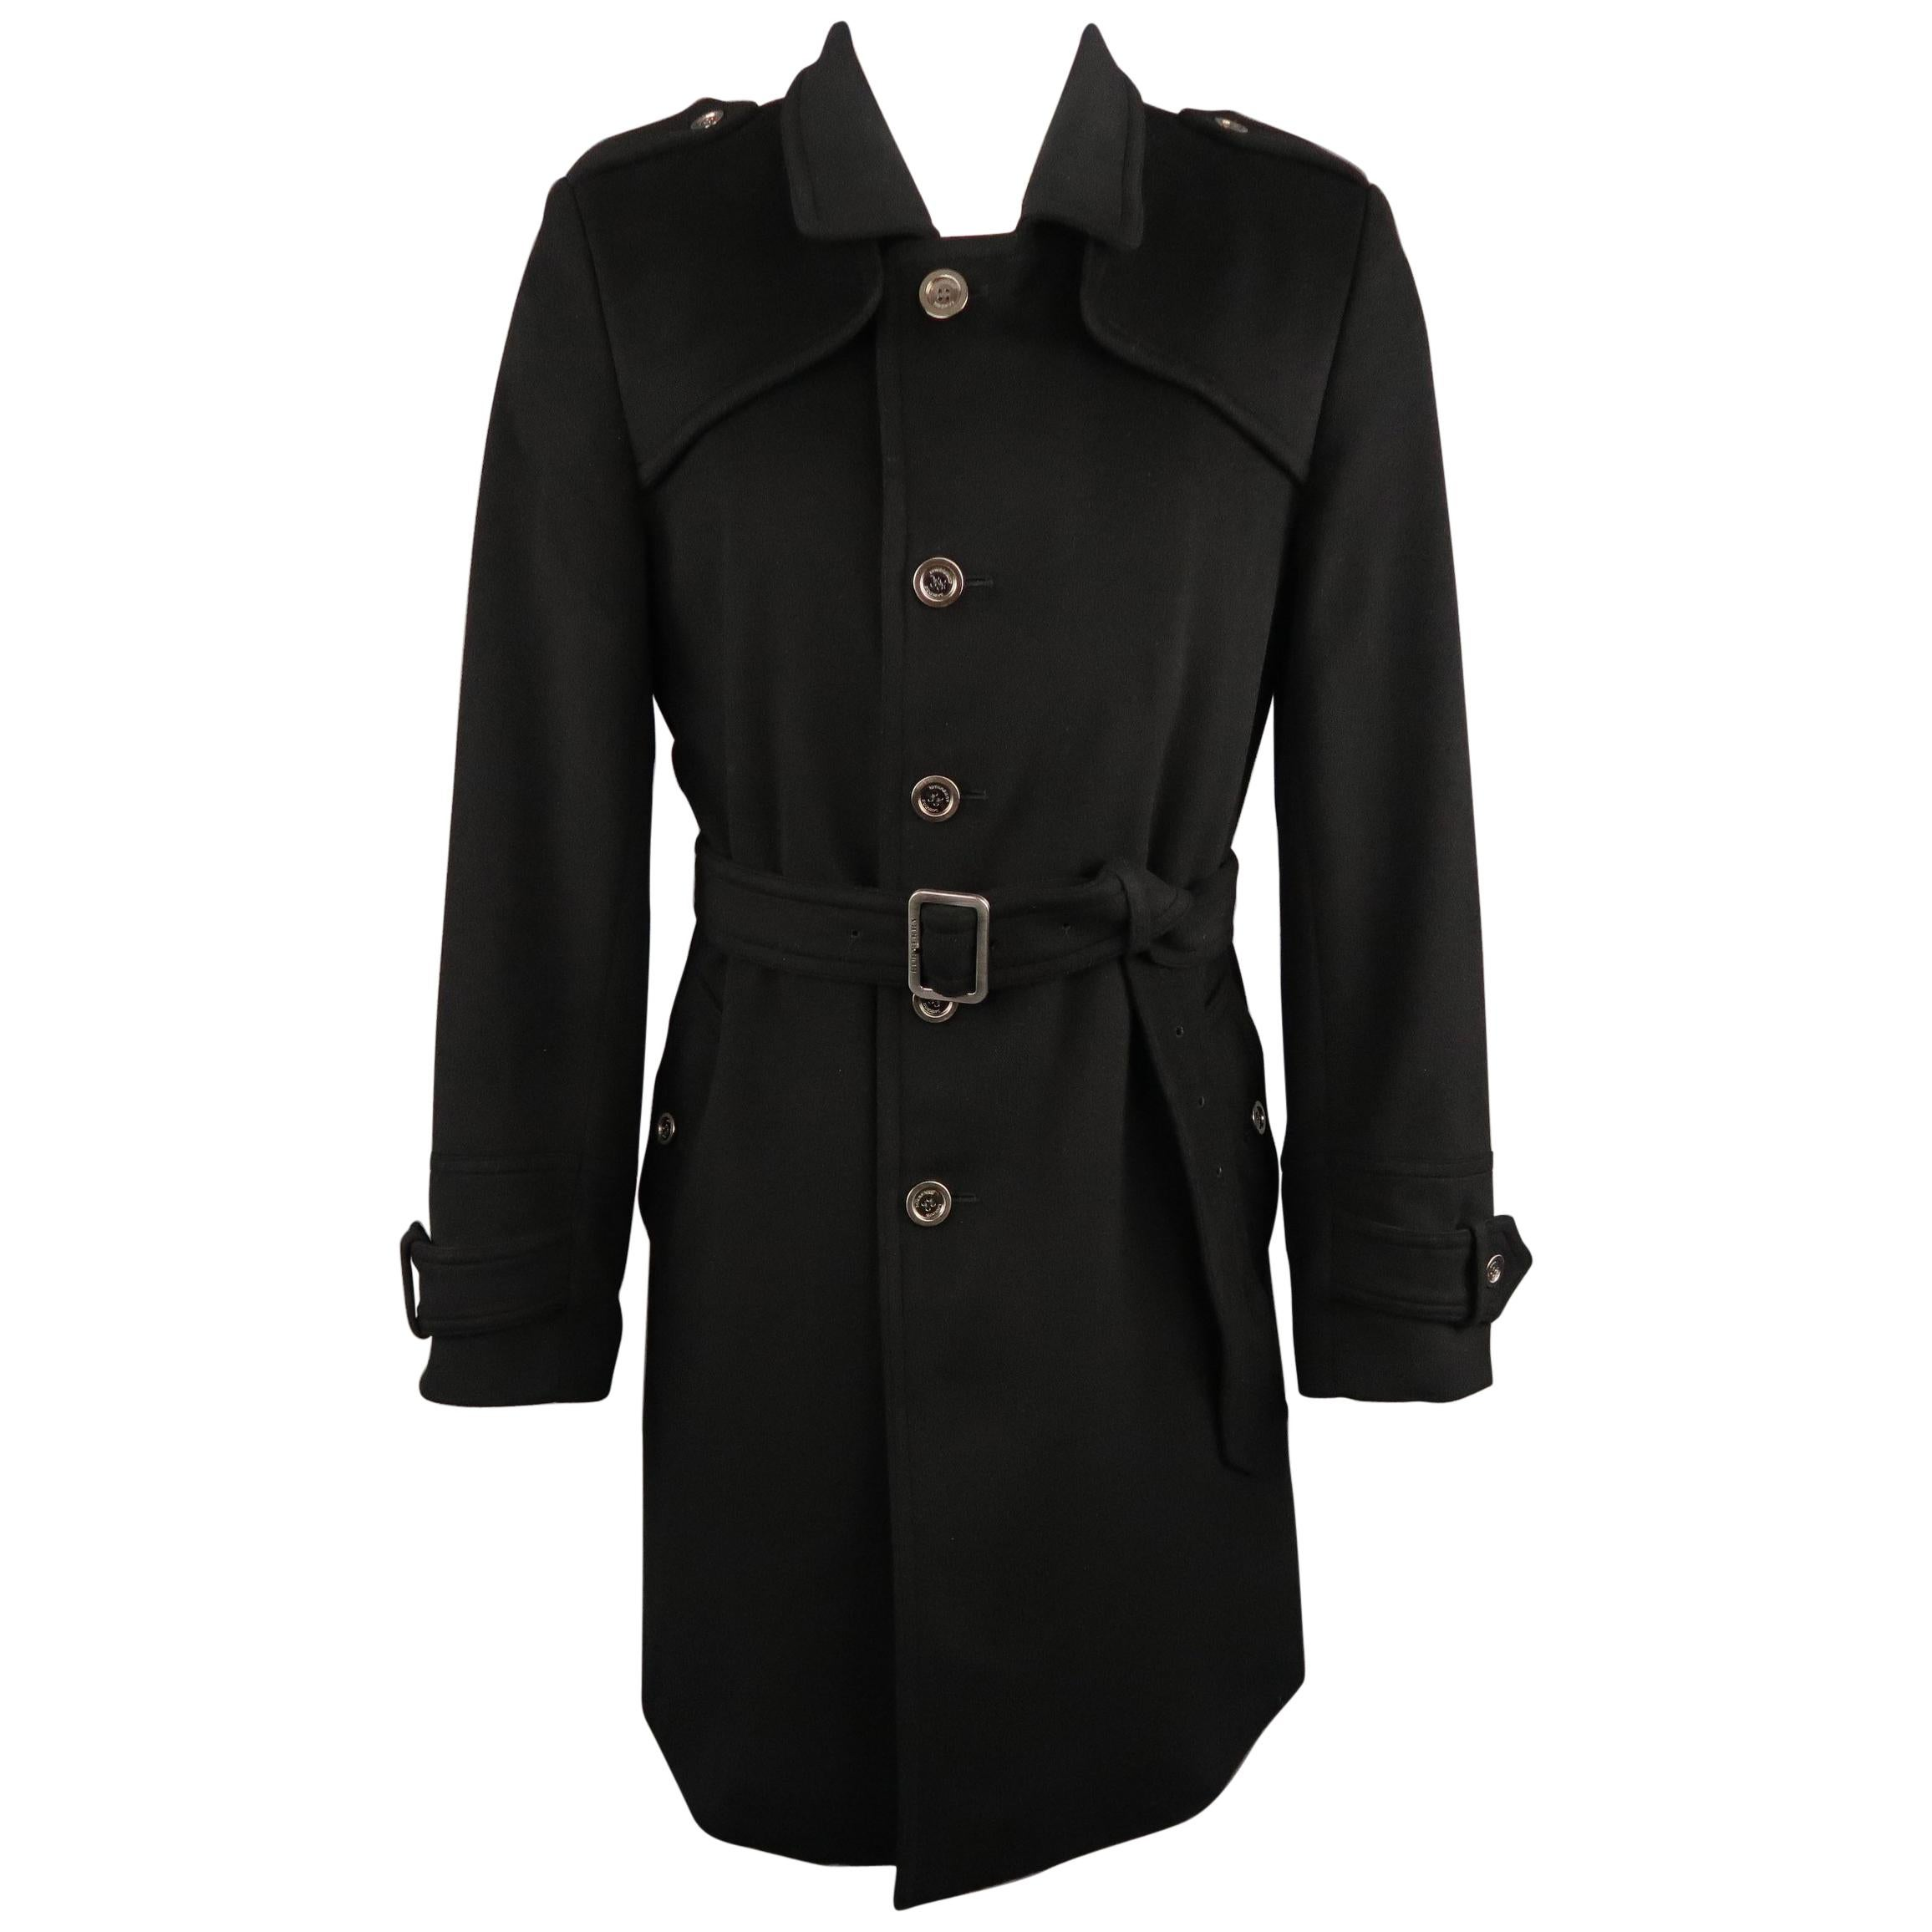 0072705ca419 Burberry Trench Coats - 31 For Sale on 1stdibs